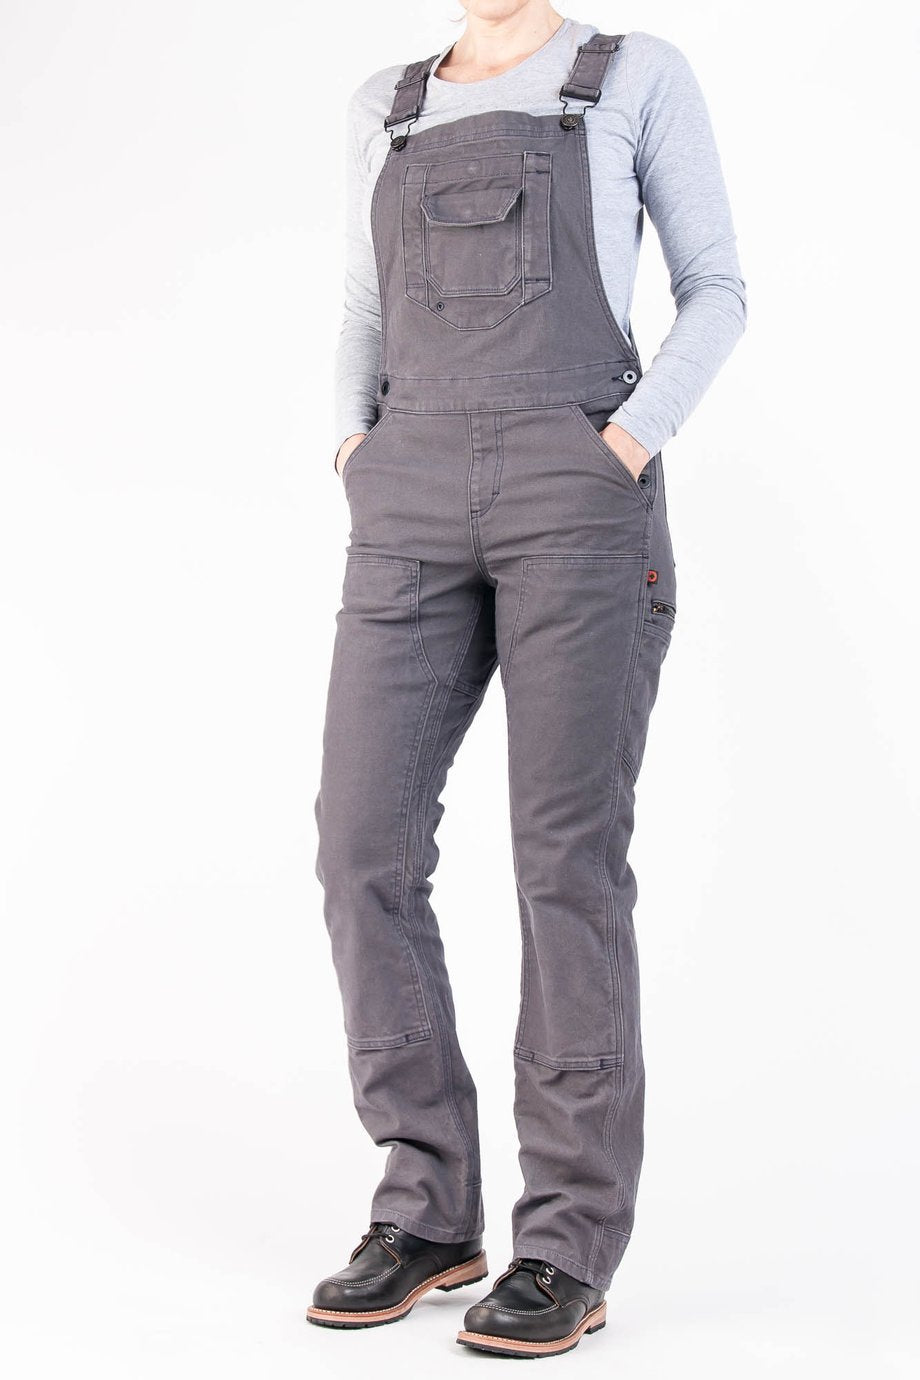 Dovetail | Freshley Overall in Dark Grey at SHiFT Bainbridge